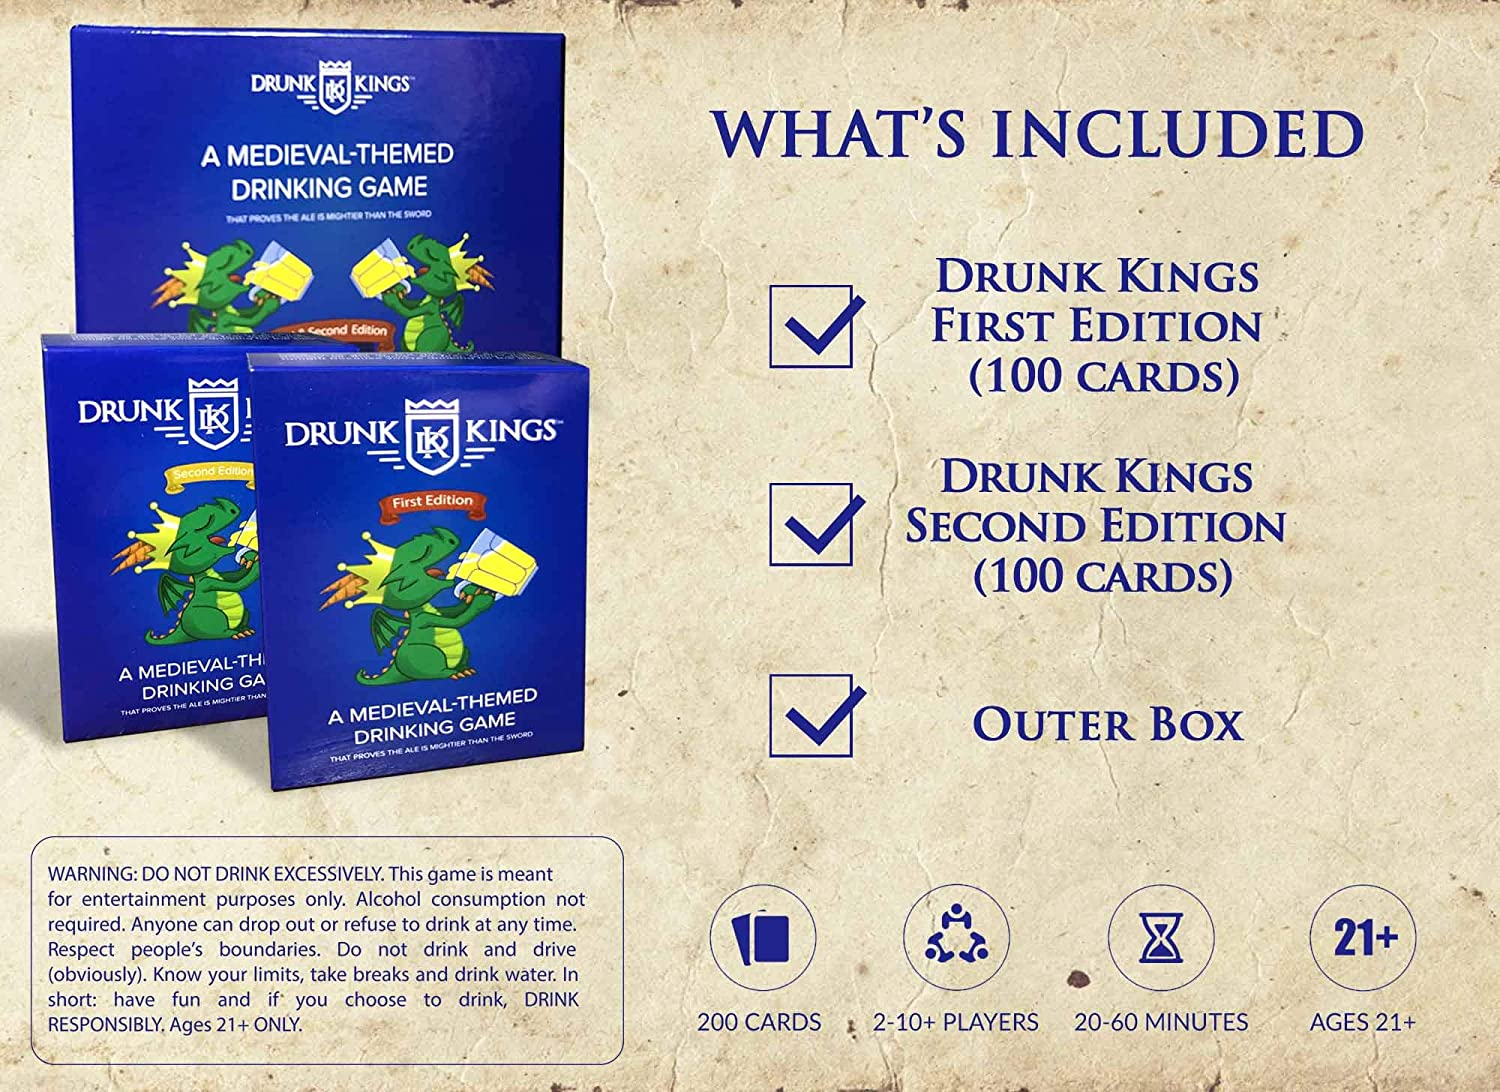 Fantasy Themed Cards Drunk Kings Gift for Man Cave//Bar Bachelor//Bachelorette Drinking Games for Adults Party Fun Party Board Games for 21st Birthday